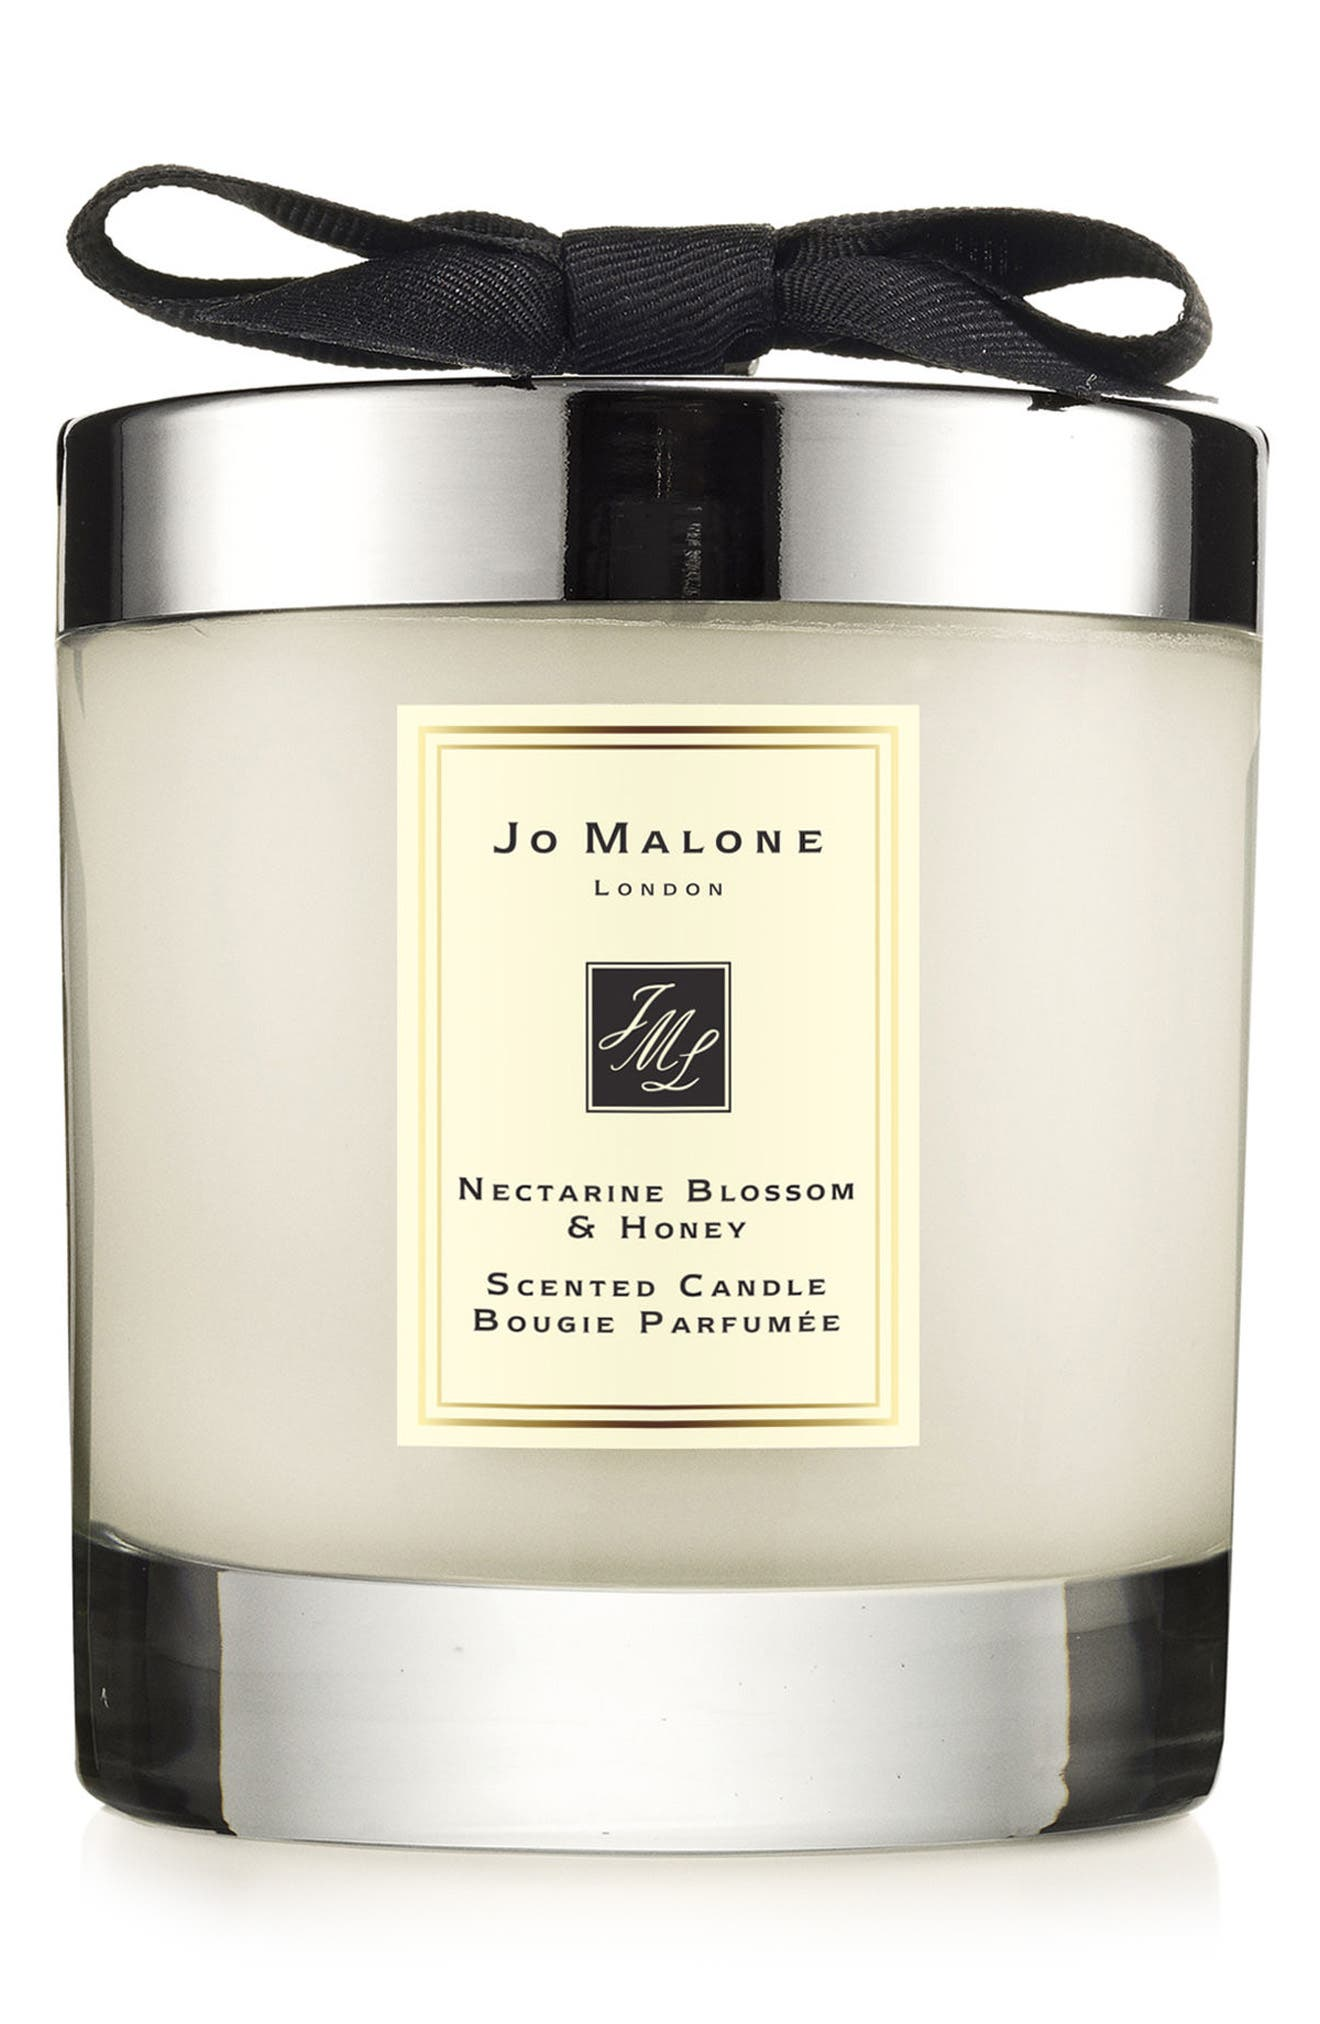 Jo Malone™ 'Nectarine Blossom & Honey' Scented Home Candle